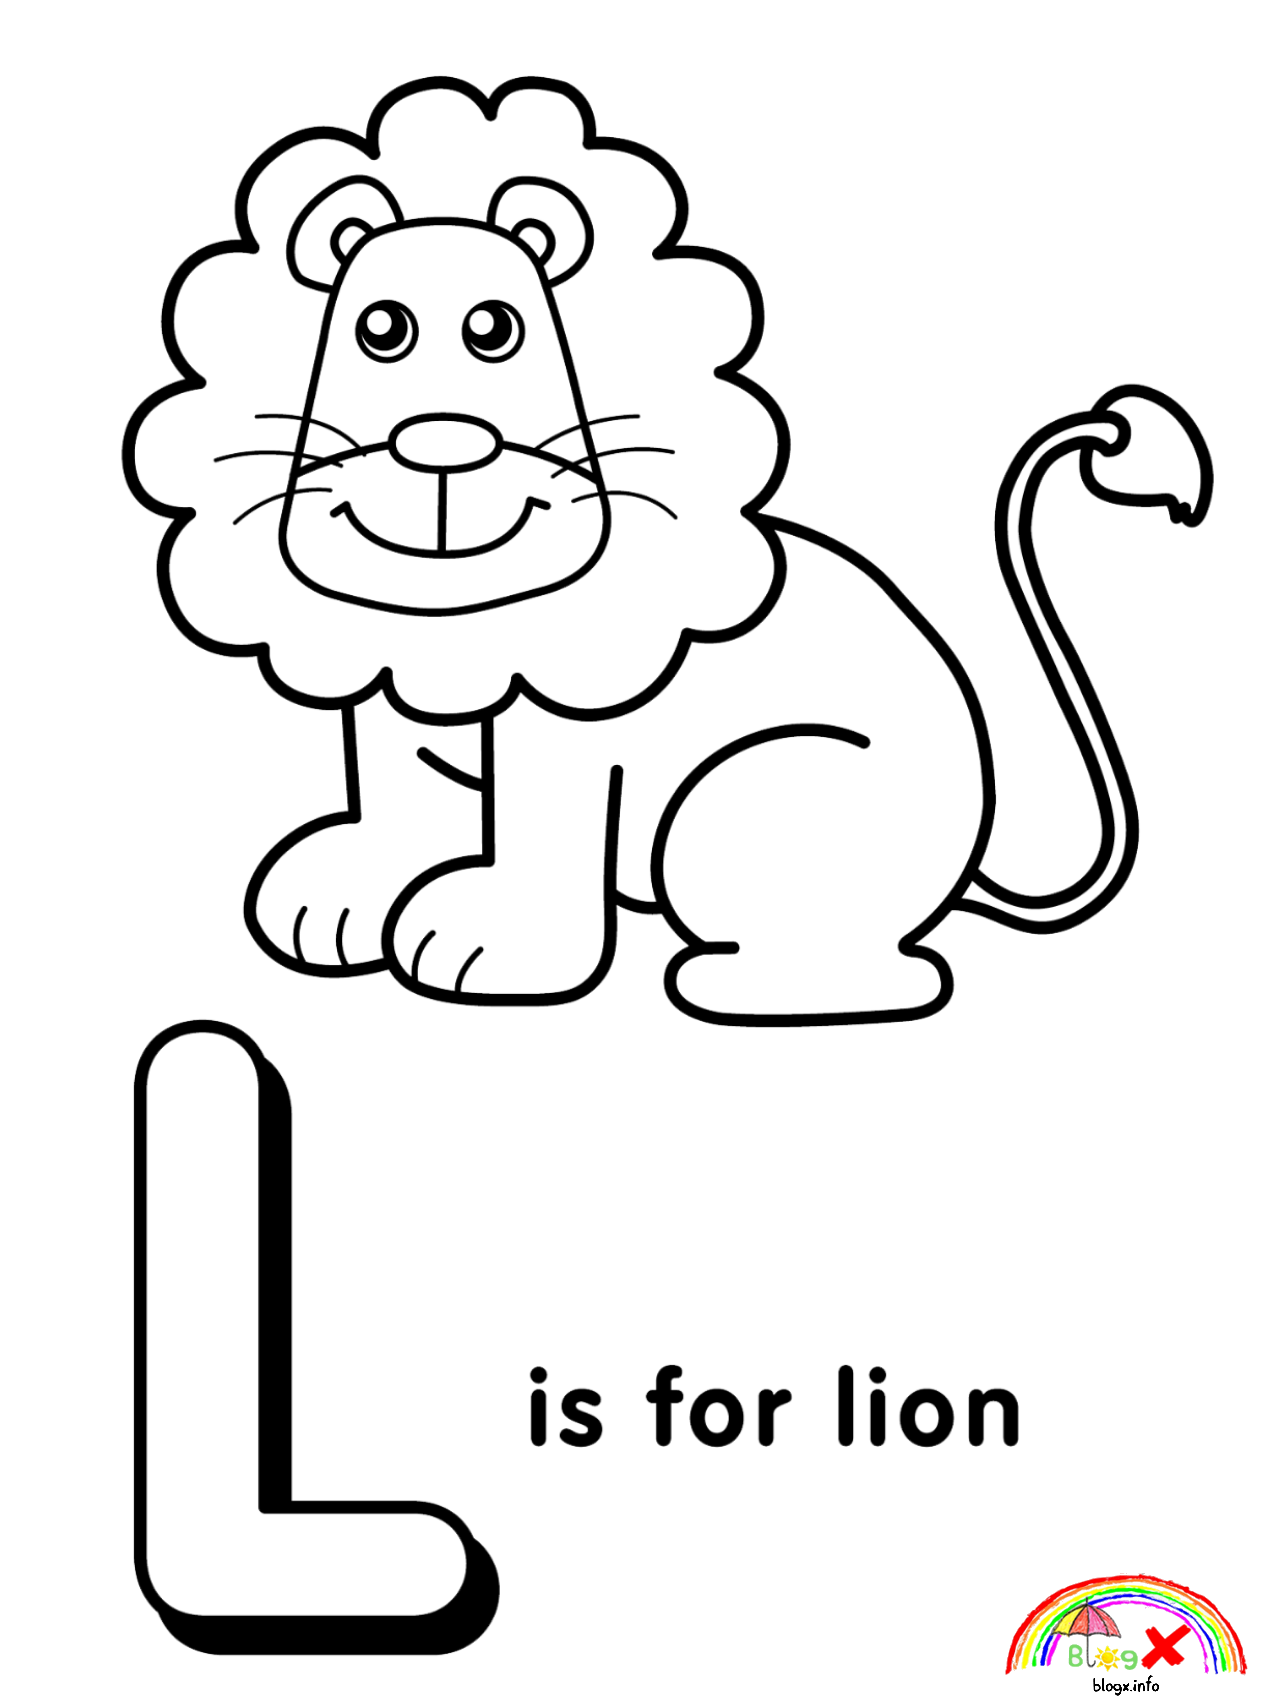 Pin By عامر مصطفى On Coloring Pages Abc Coloring Pages Alphabet Coloring Pages Letter A Coloring Pages